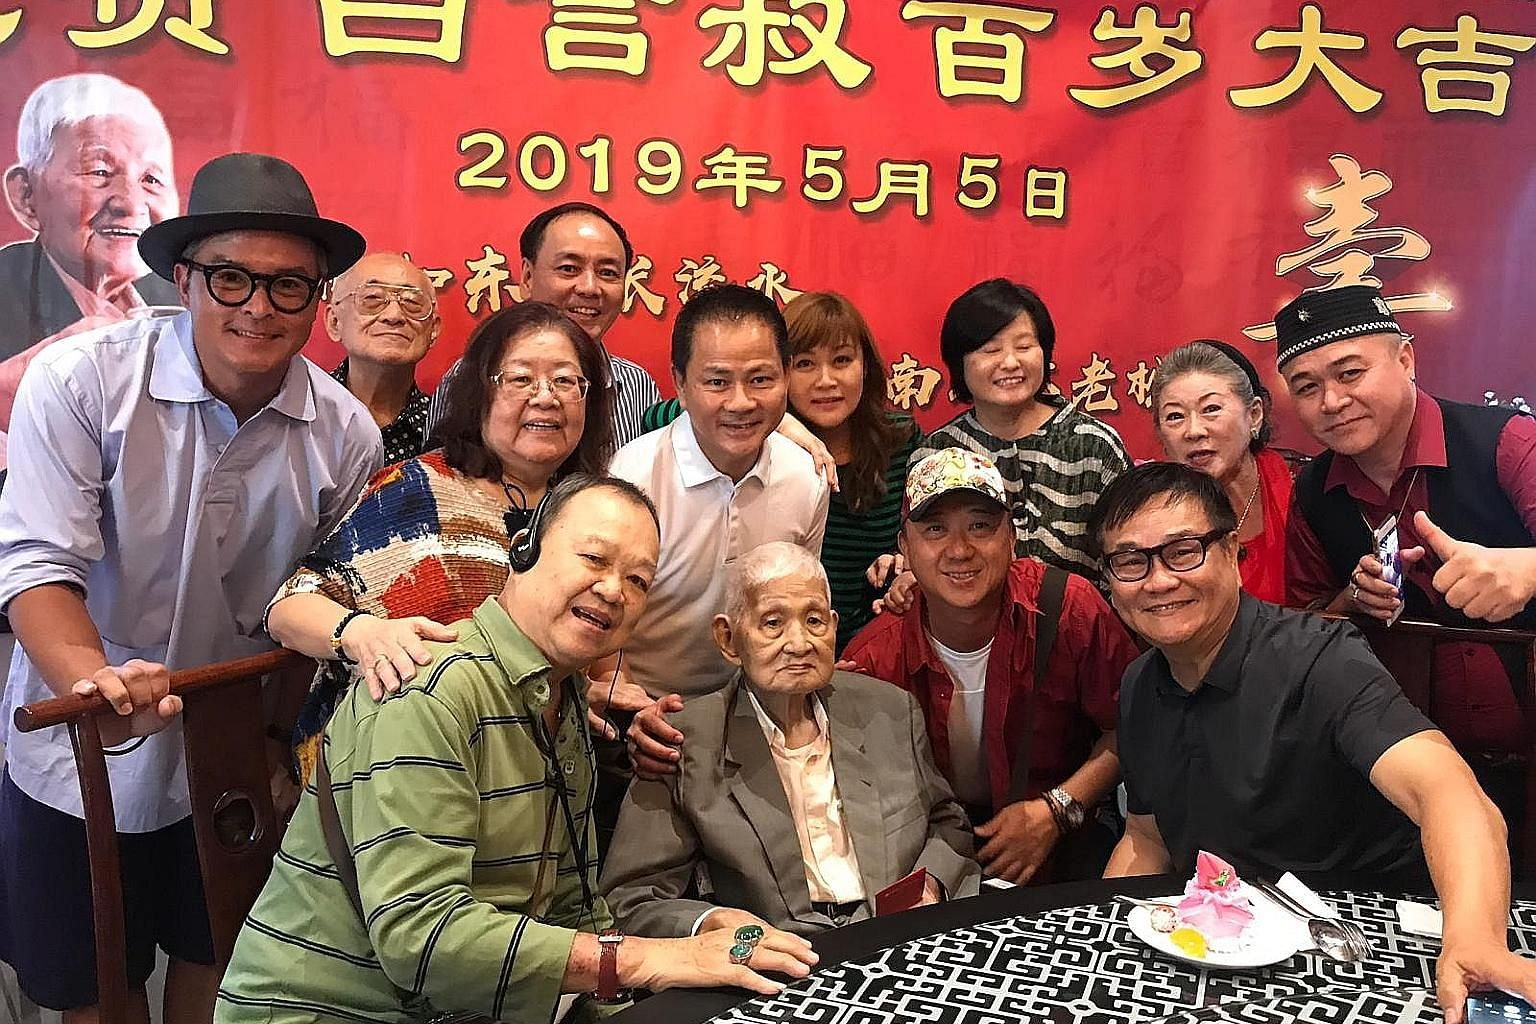 (Above) Show business veterans at Bai Yan's 100th birthday celebration in May. (From far left) Former television actresses Ye Sumei and Chen Bifeng, who worked with Bai Yan in the 1980s and were his goddaughters, were at the wake.